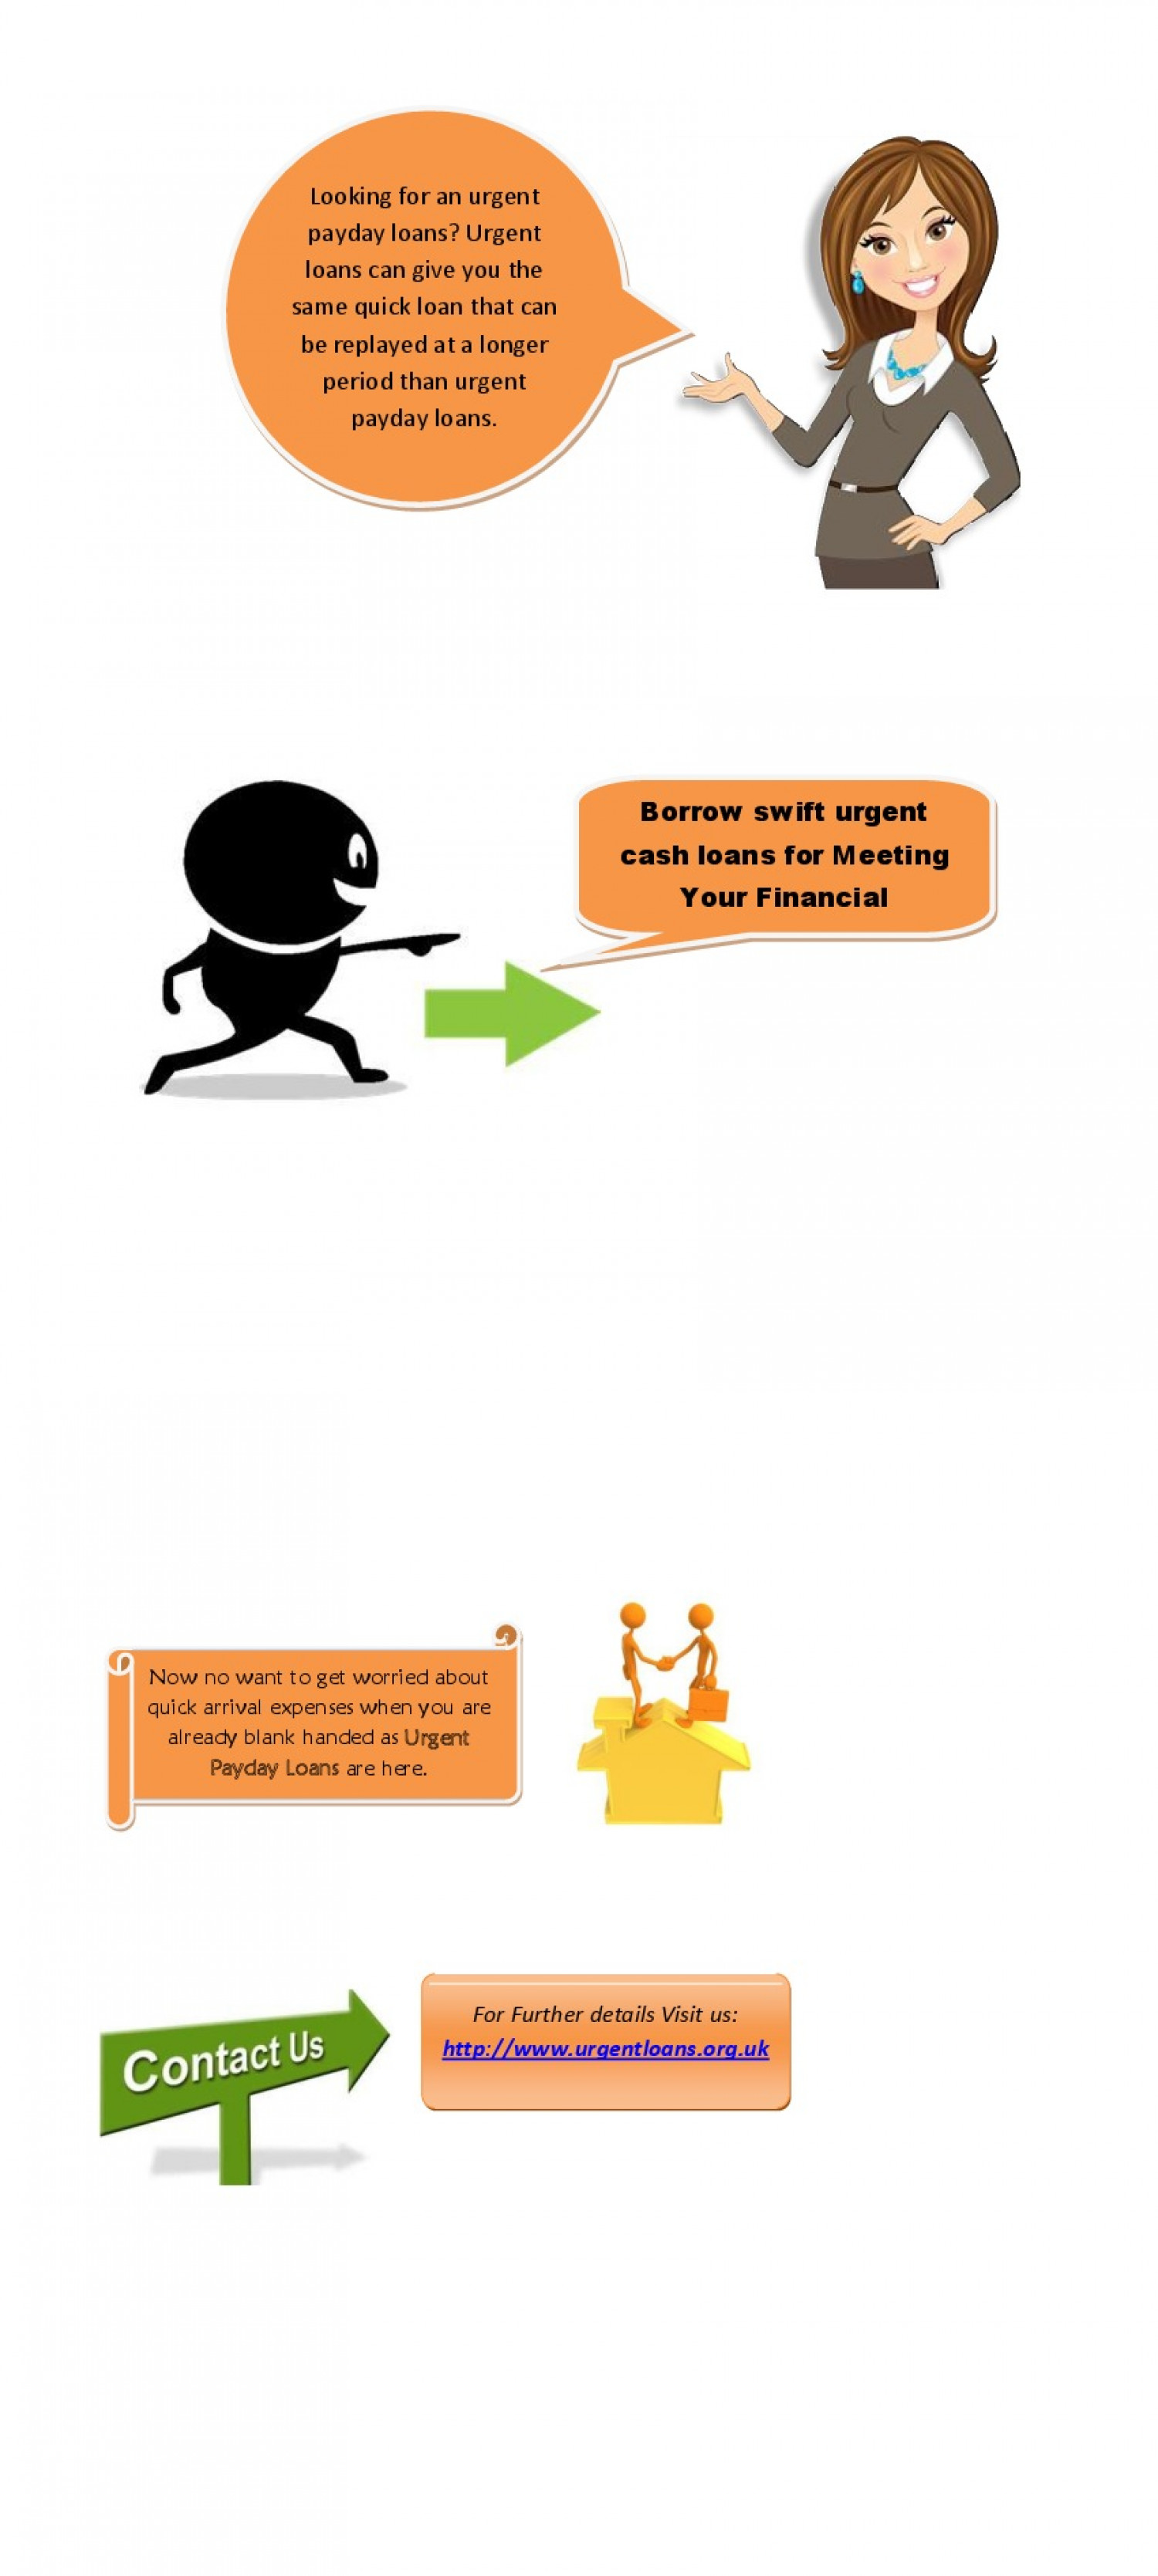 Urgent Payday Loans Infographic